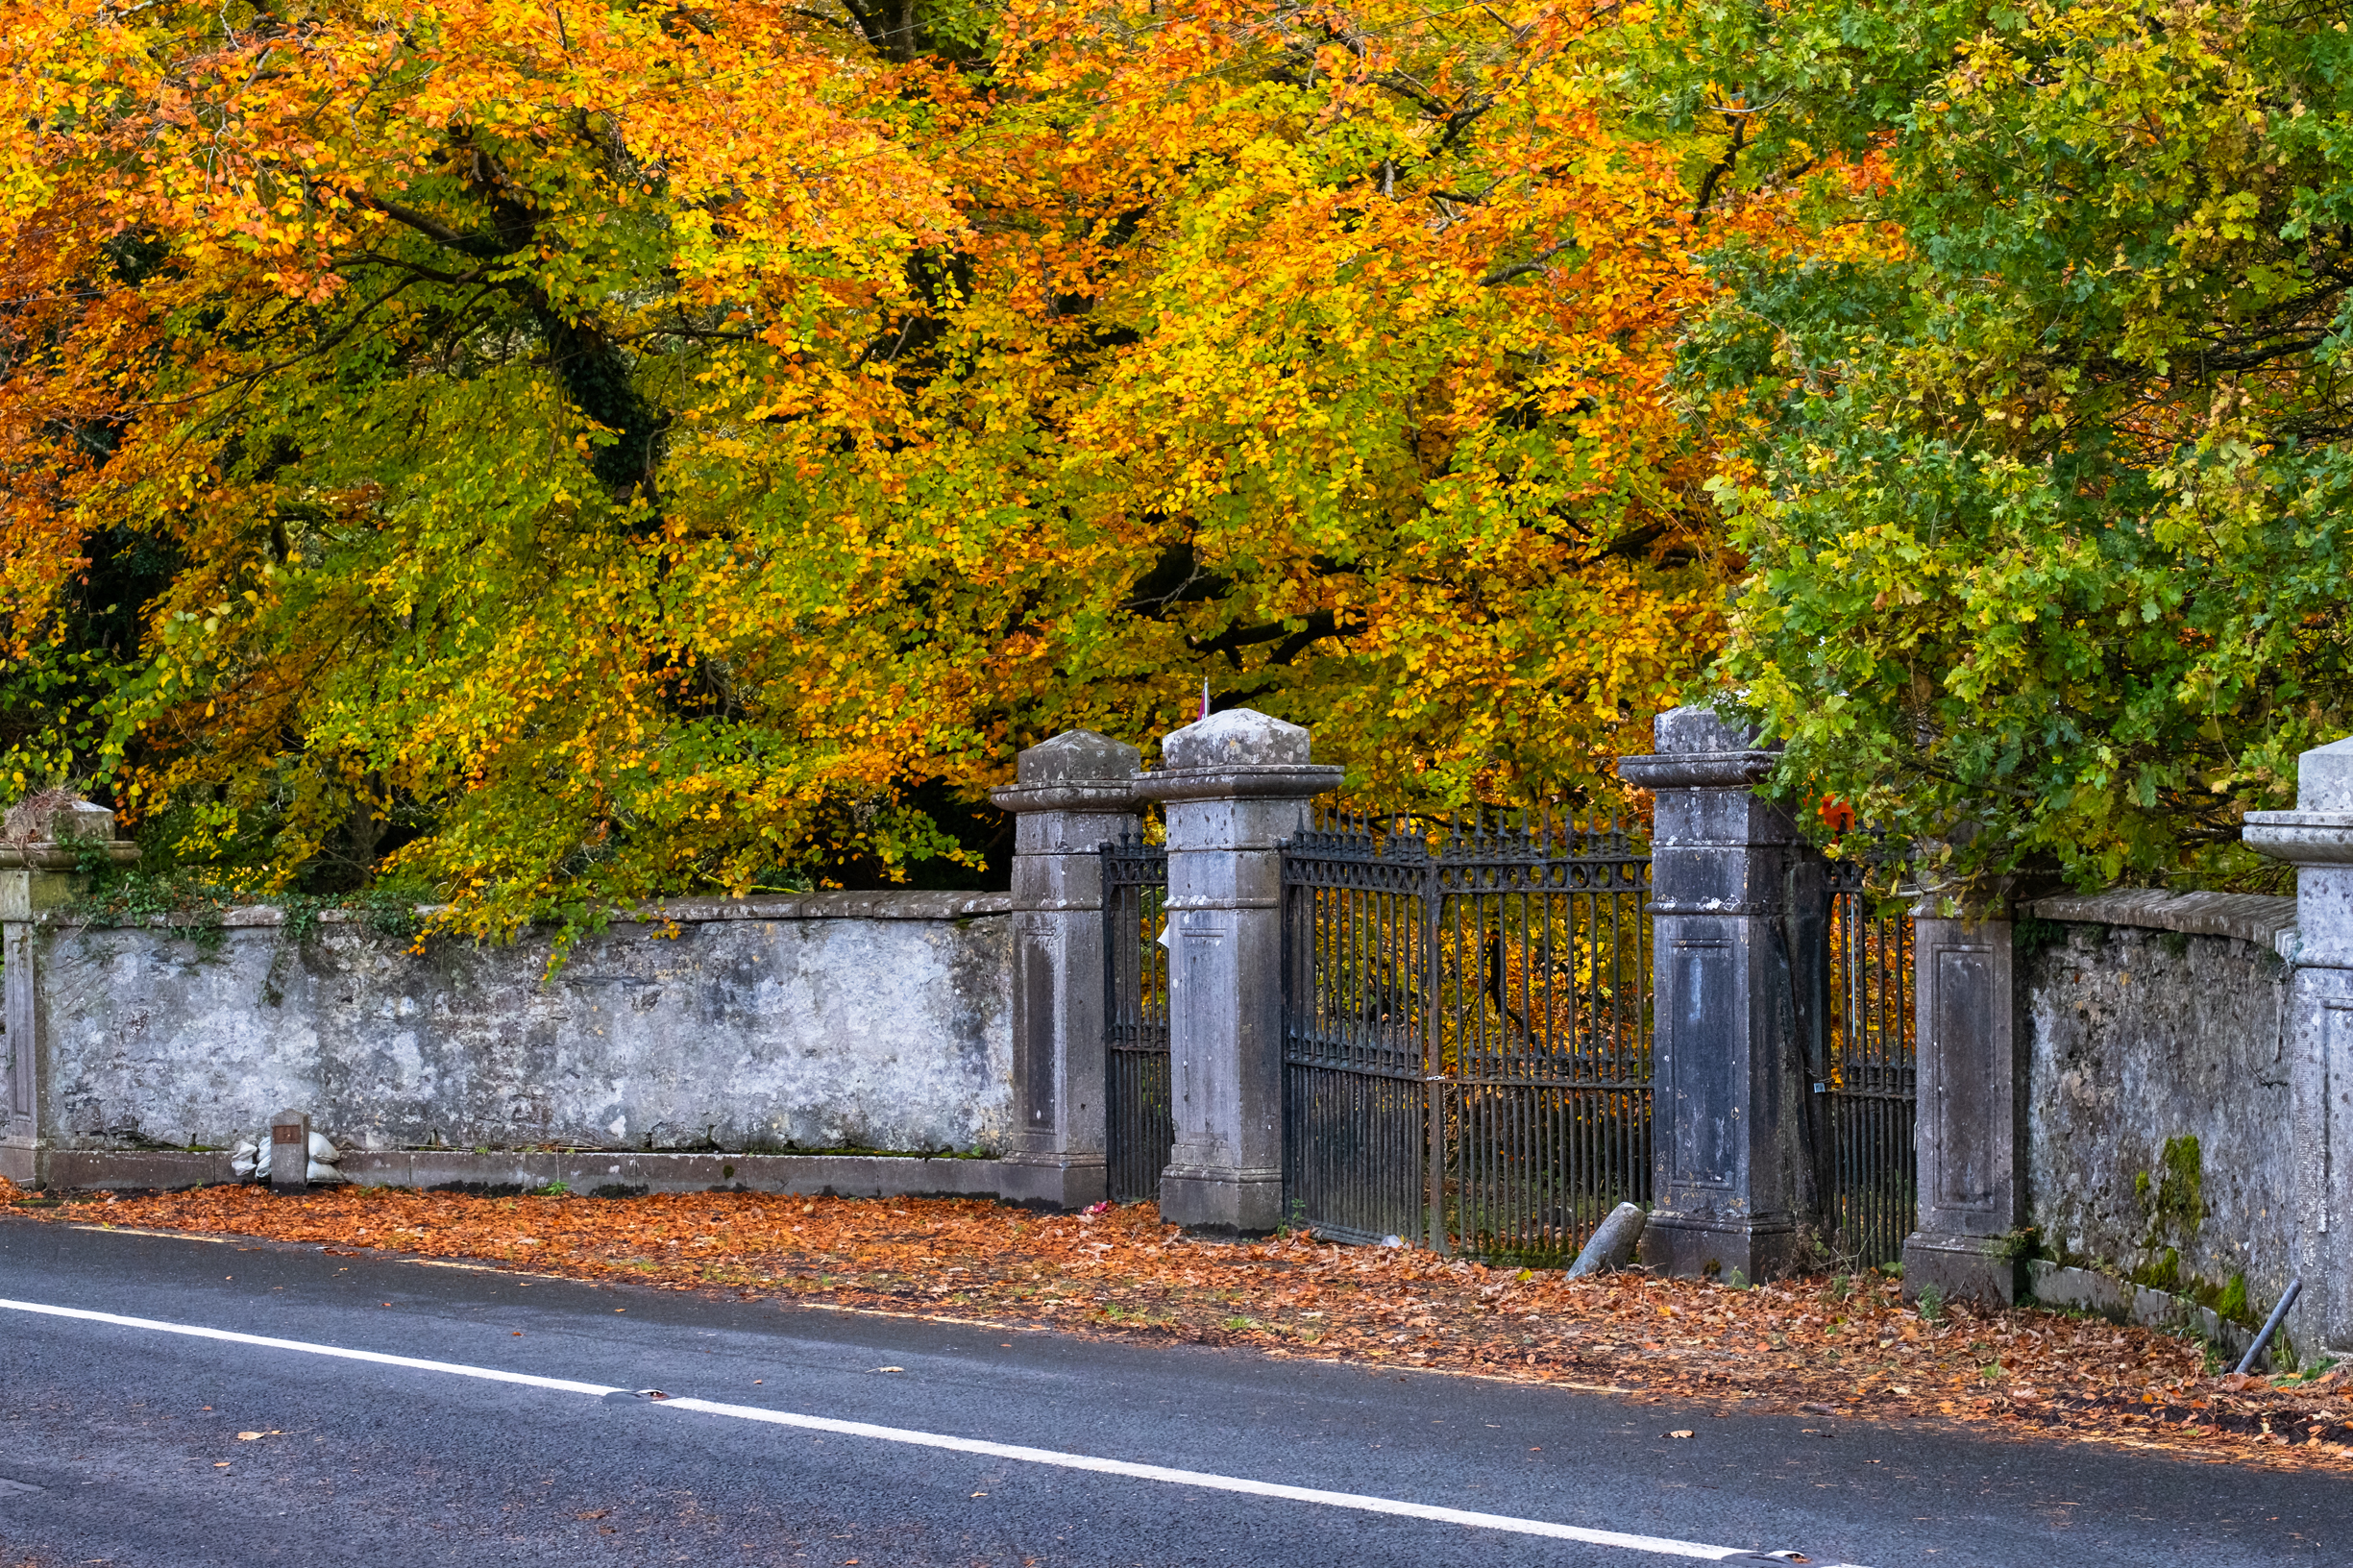 raford house gates in autumn